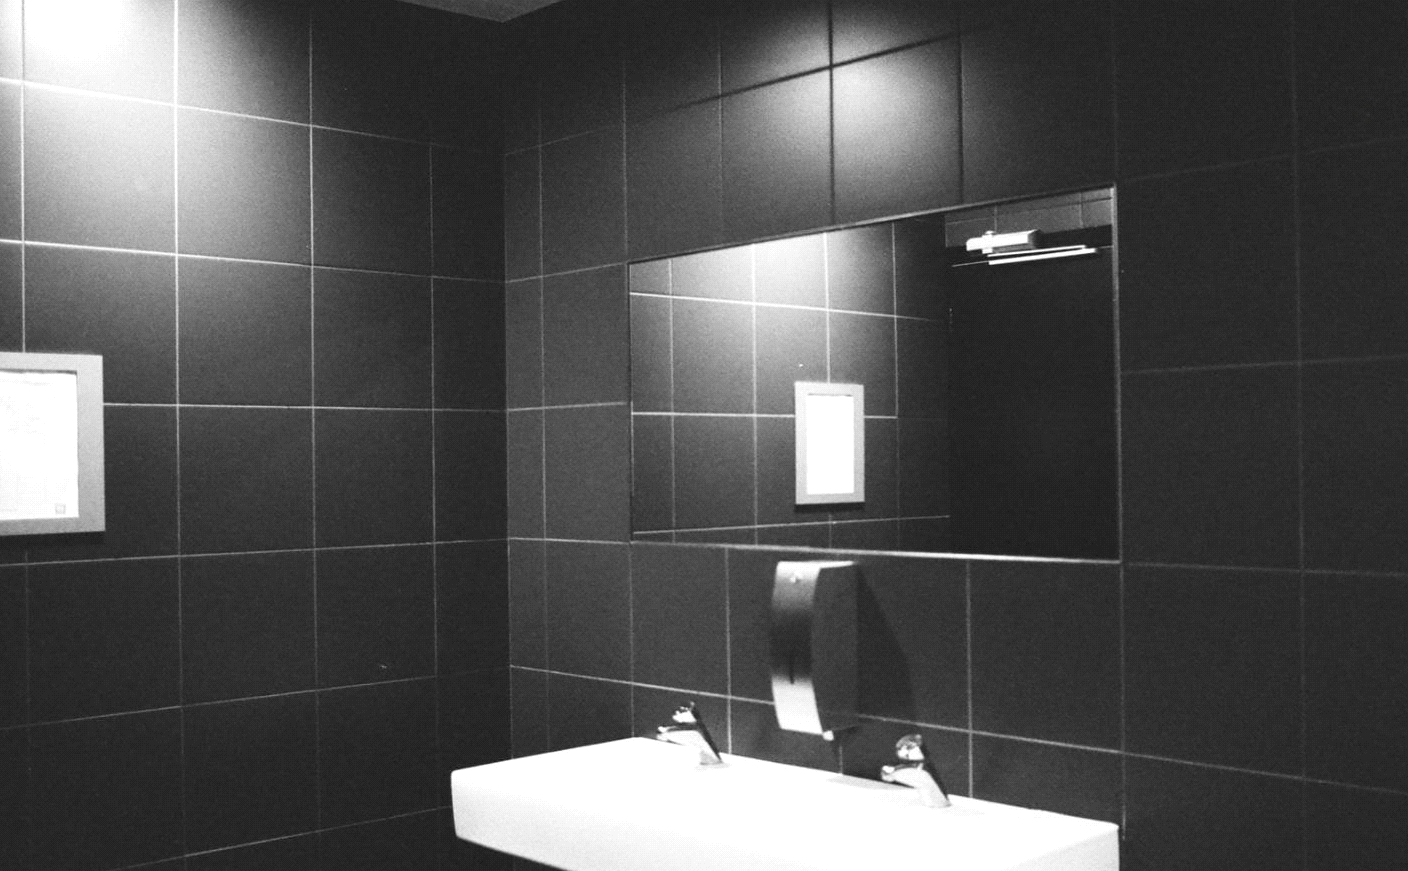 9 Lighting Ideas for Your Bathroom Design- Indirect Lighting for Ambiance